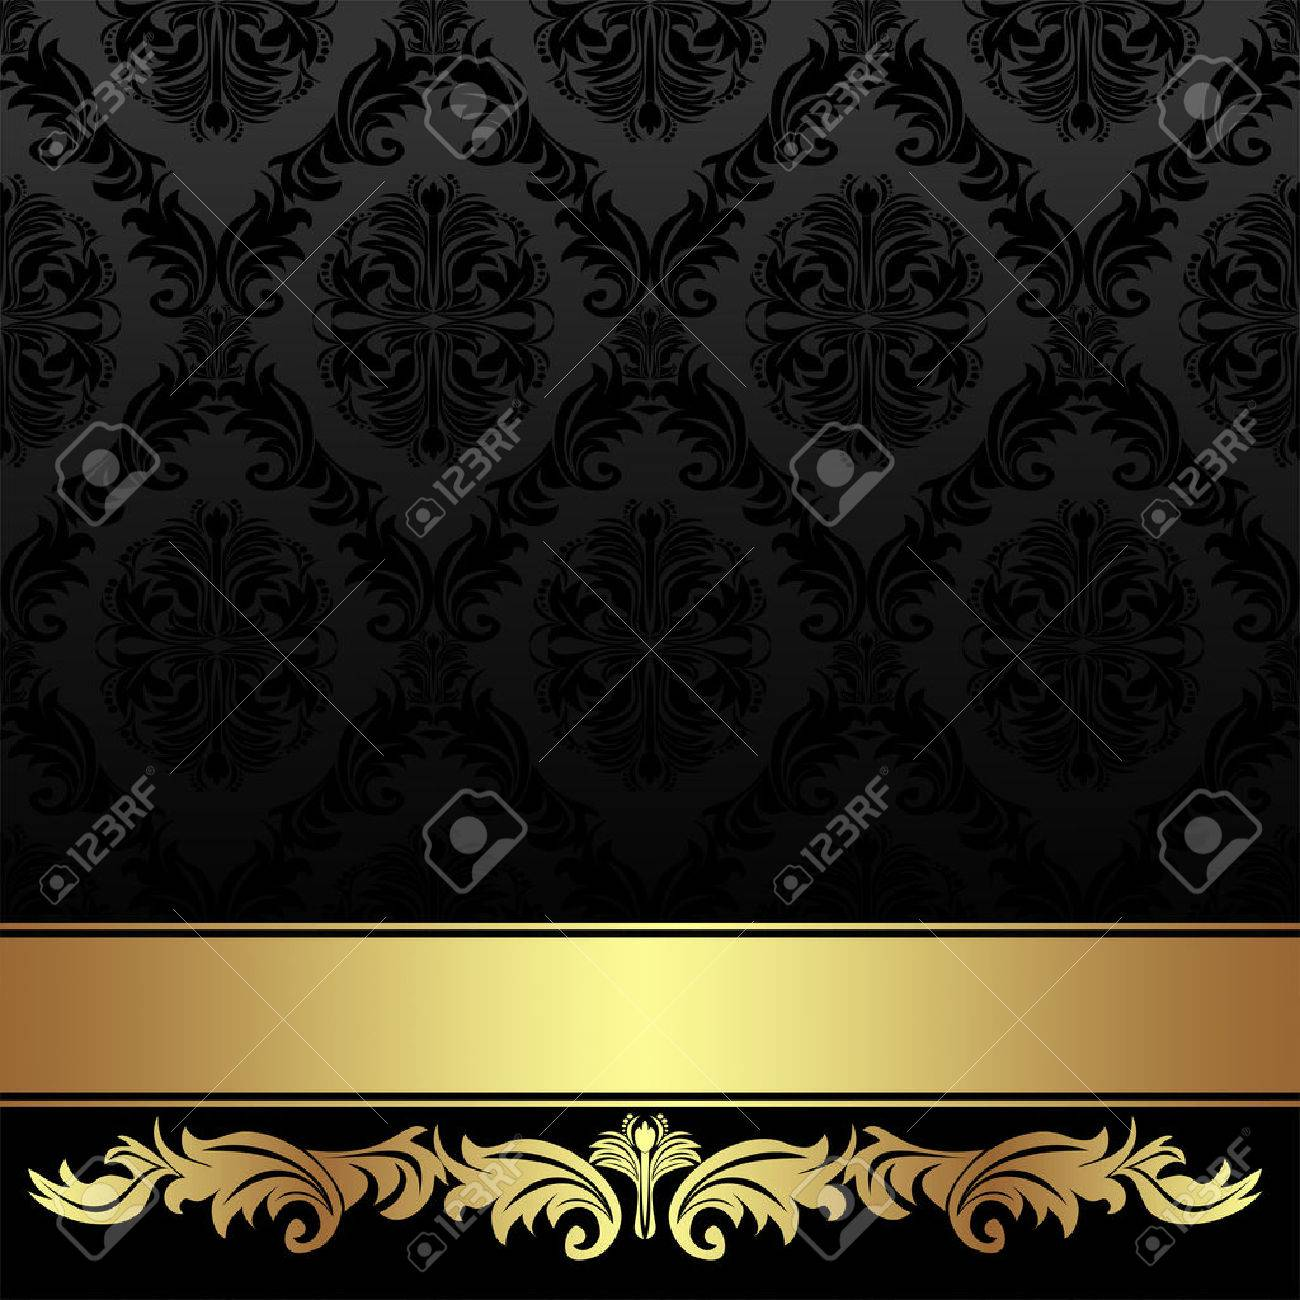 Ornate charcoal damask Background with golden Ribbon. - 41201048